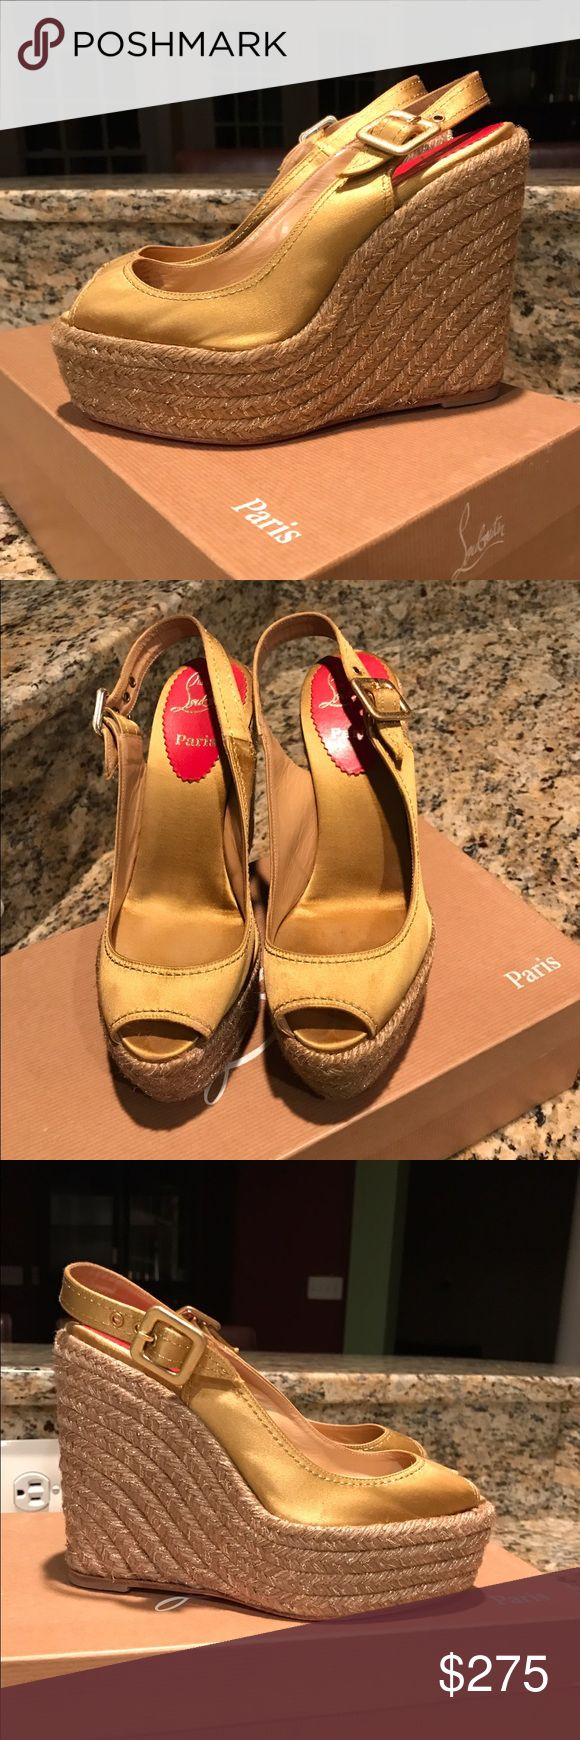 Christian Louboutin Wedges Size 37 - Christian Louboutin - Size 37 - Wedges  - Yellow  - Excellent condition - Soles professionally painted  - Comes with original box and dust bag  - Espadrilles Christian Louboutin Shoes Wedges